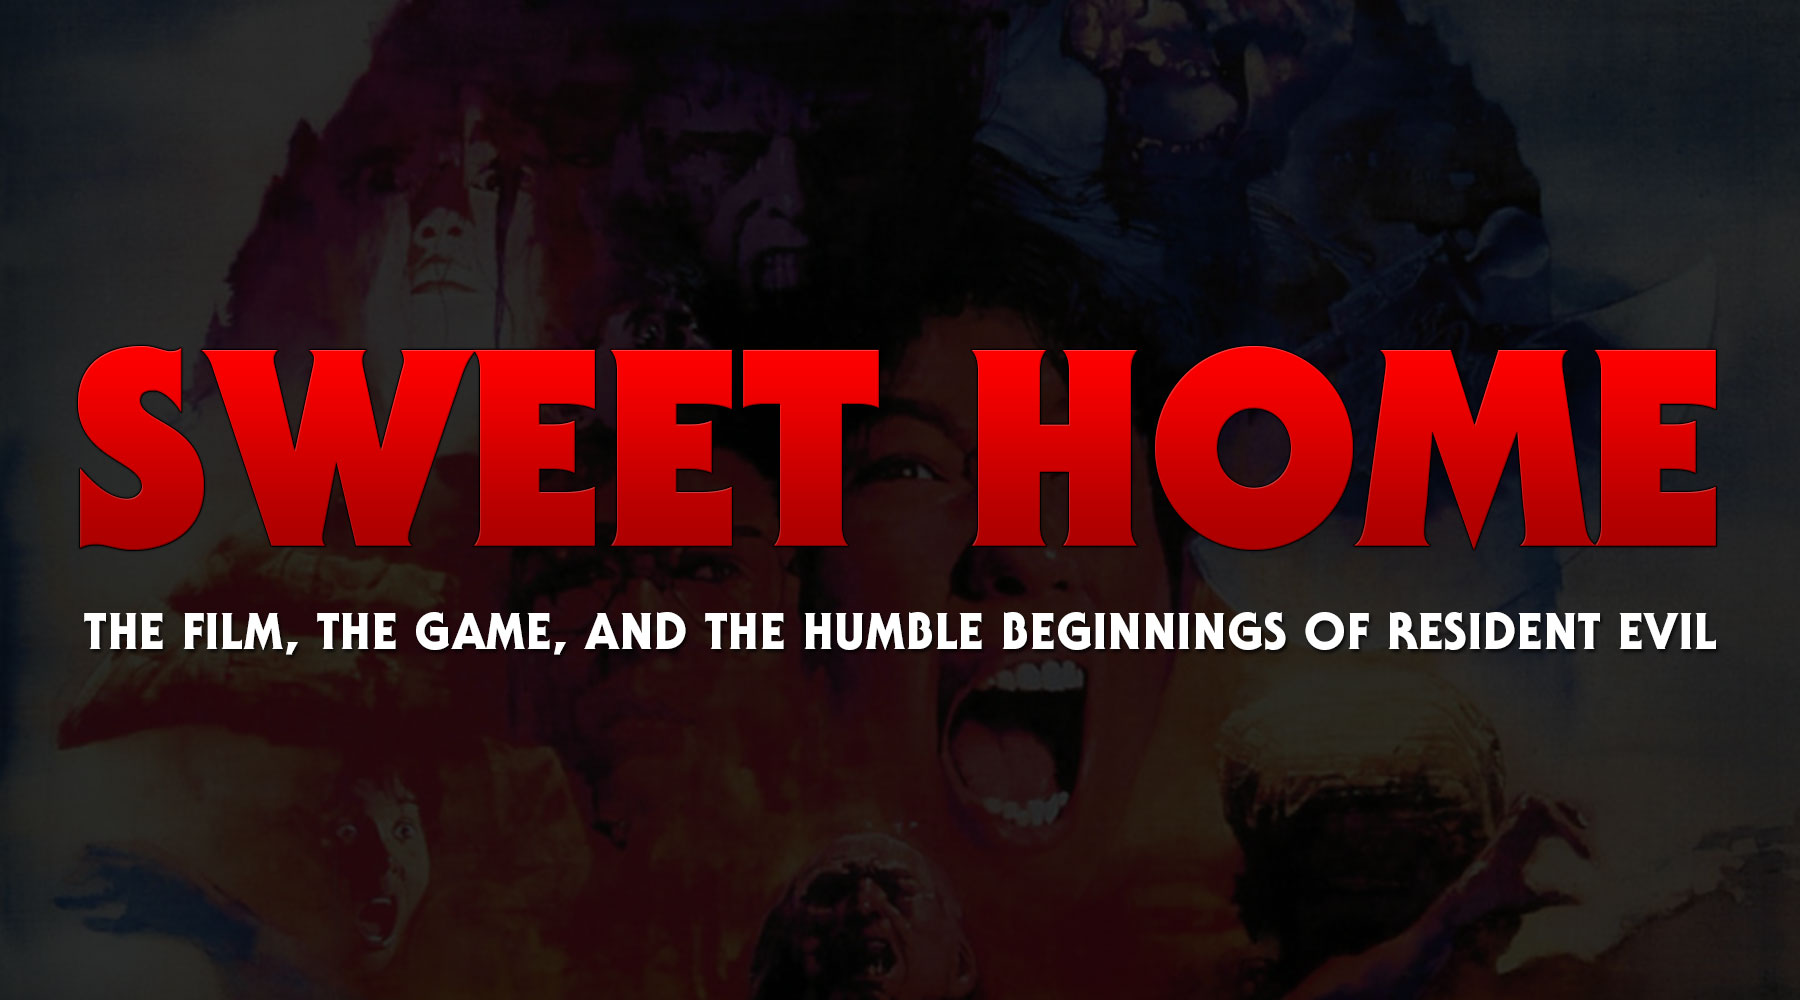 Sweet Home: The Film, The Game, and the Humble Beginnings of Resident Evil